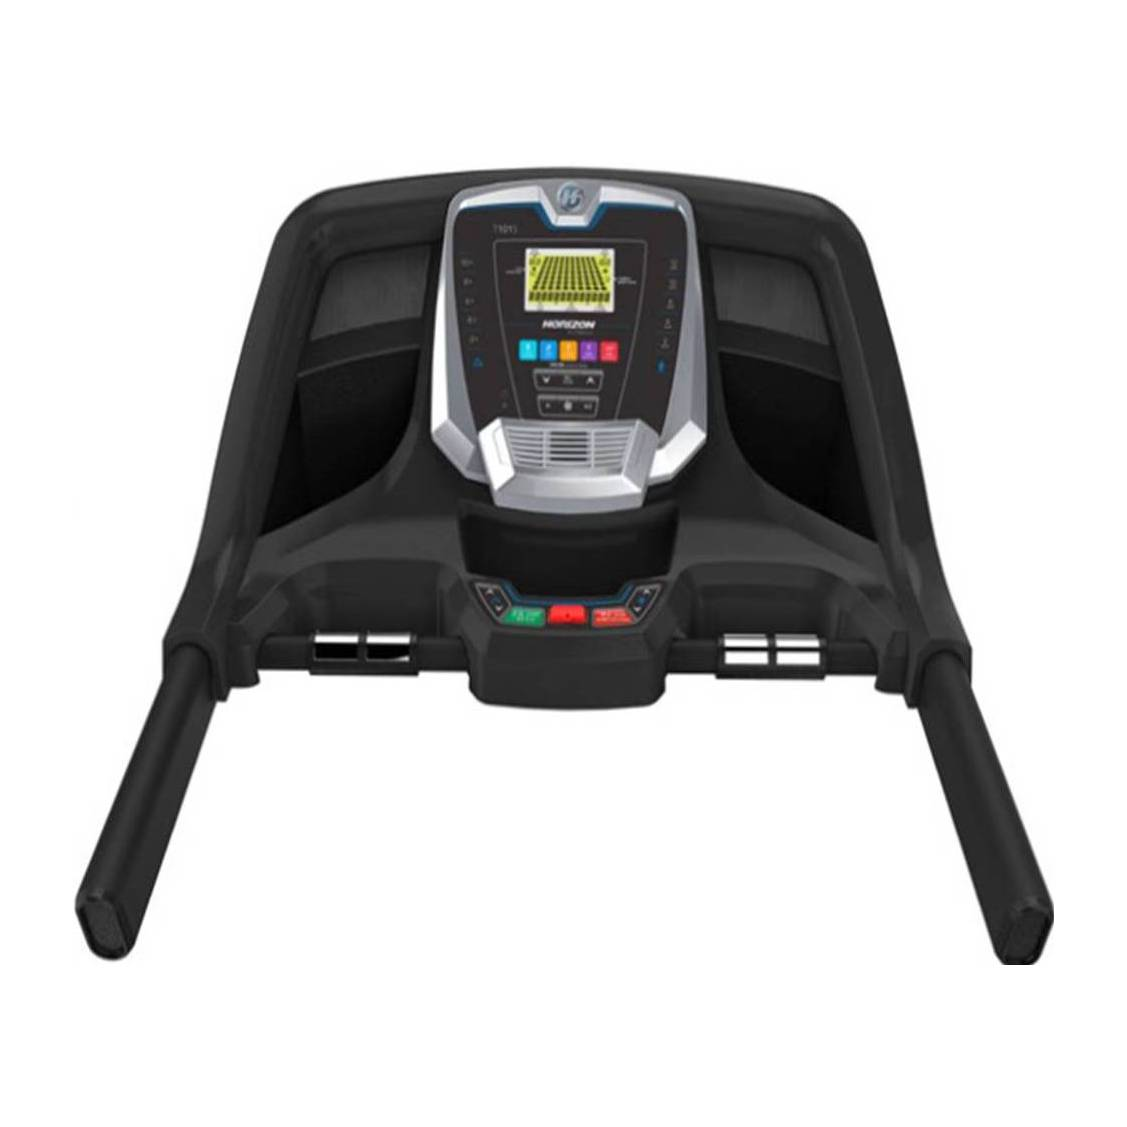 Horizon T101-04 Motorized Treadmill